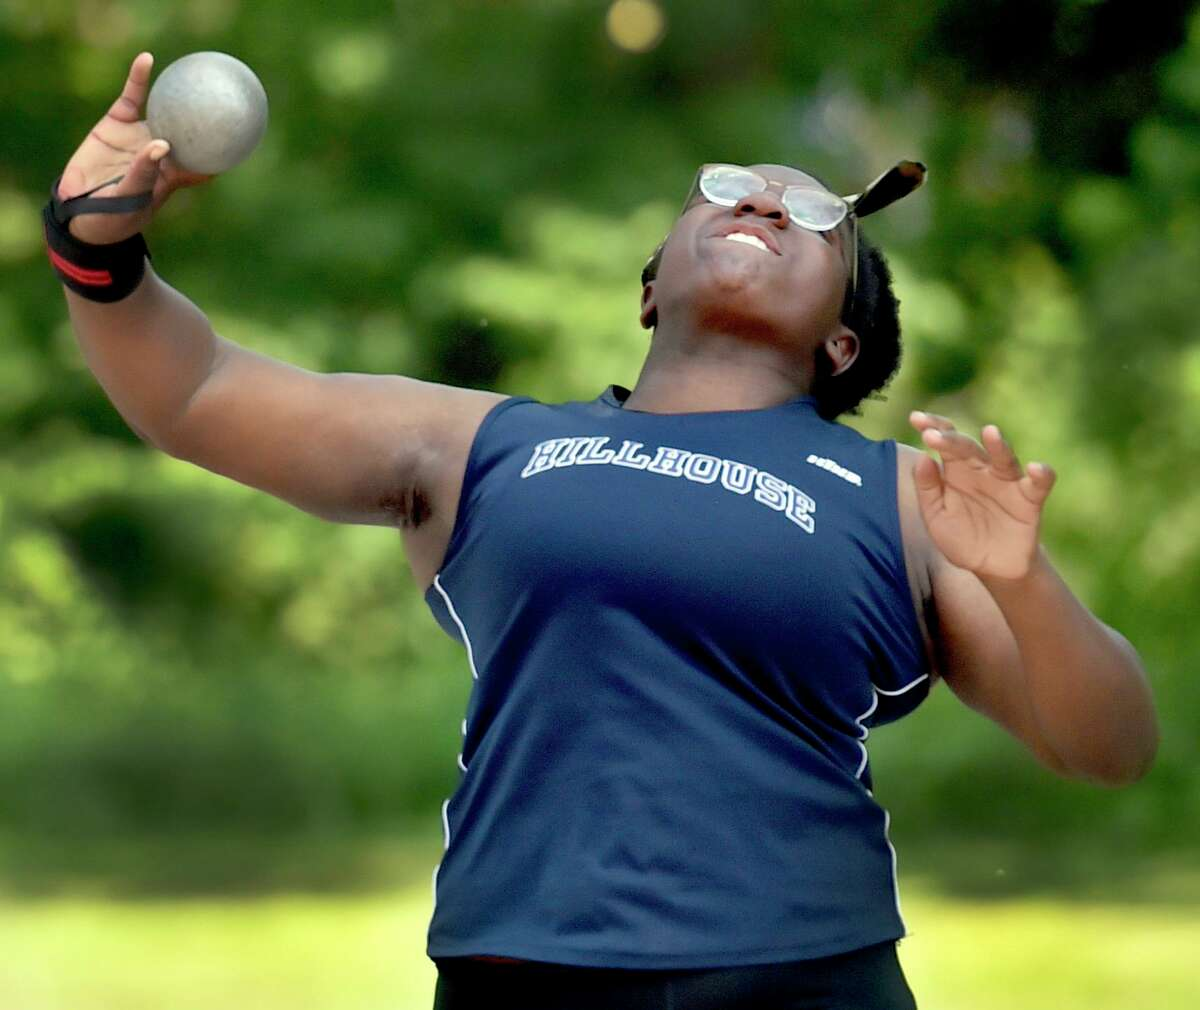 Hillhouse's Leah Moore will compete in the 38th annual Yale Interscholastic Track Classic at Coxe Cage this weekend.